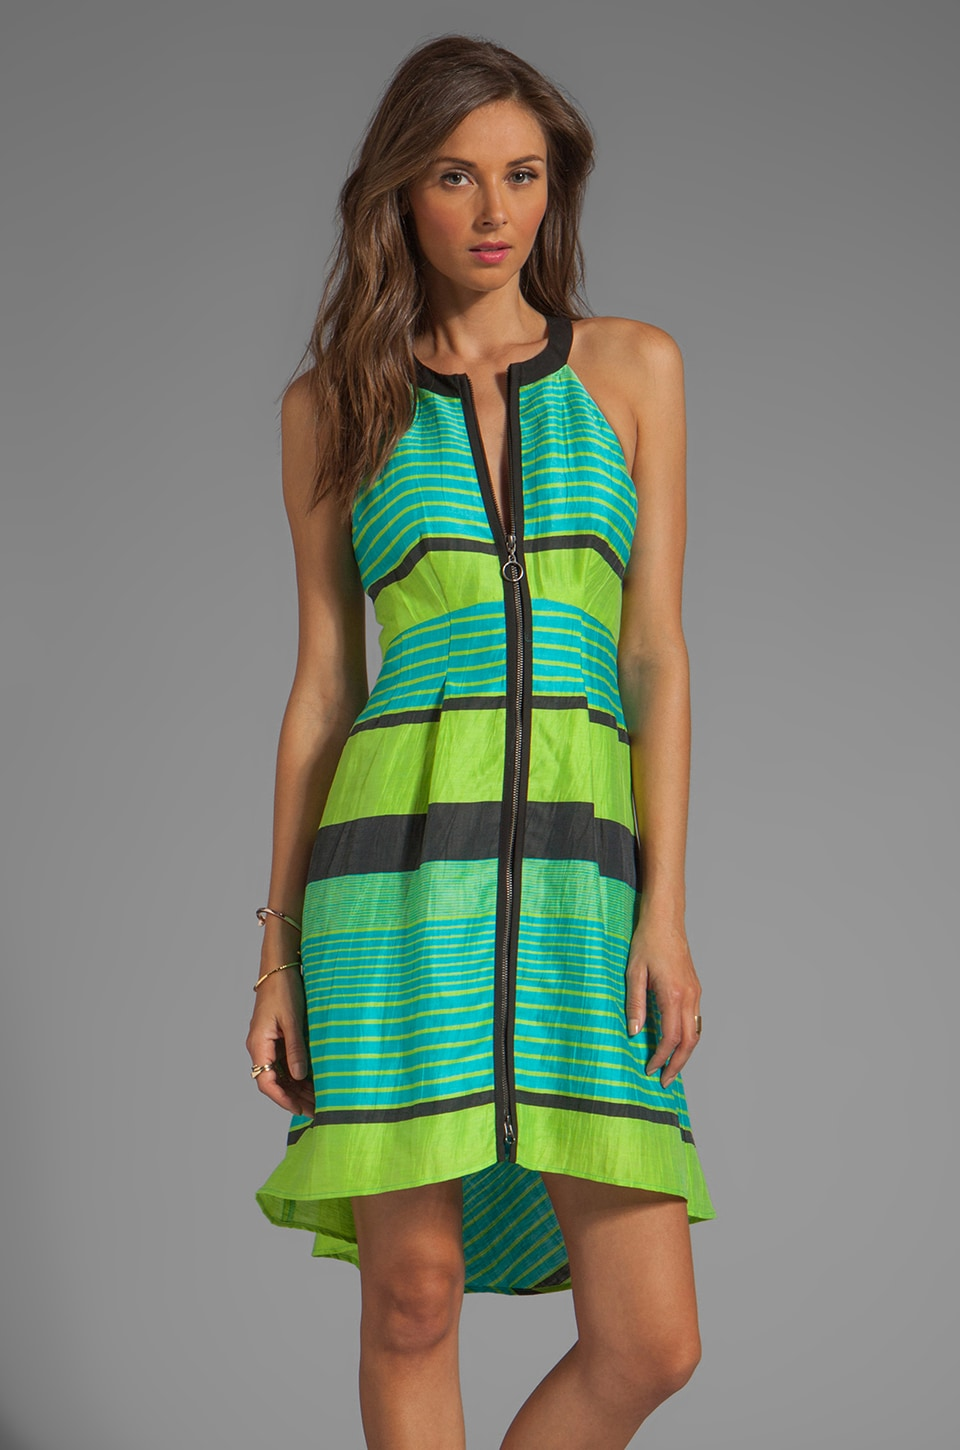 Nanette Lepore Bogatell Dress in Kiwi Multi